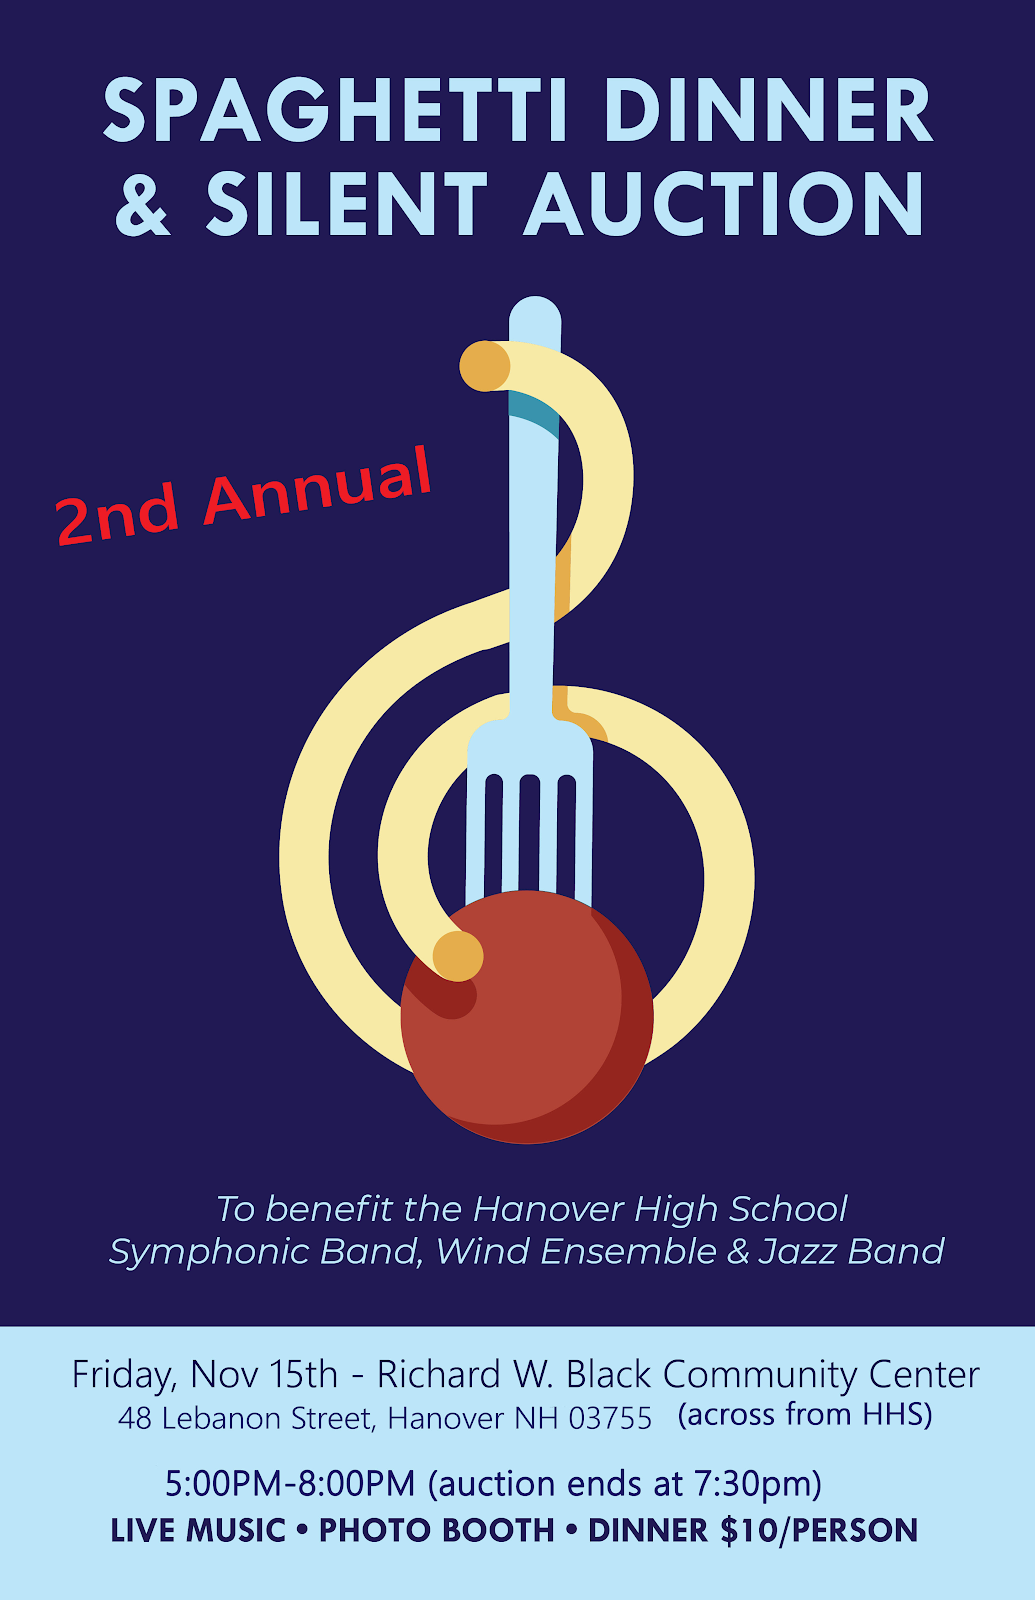 Friday November 15th there will be a spaghetti dinner and silent auction fundraiser for the HHS Symphonic Band, Wind Ensemble, and Jazz Band. This will take place at the Richard W. Black Community Center in Hanover from 5:00 - 8:00pm. $10 per person. There will be live music, a photo booth, and dinner.